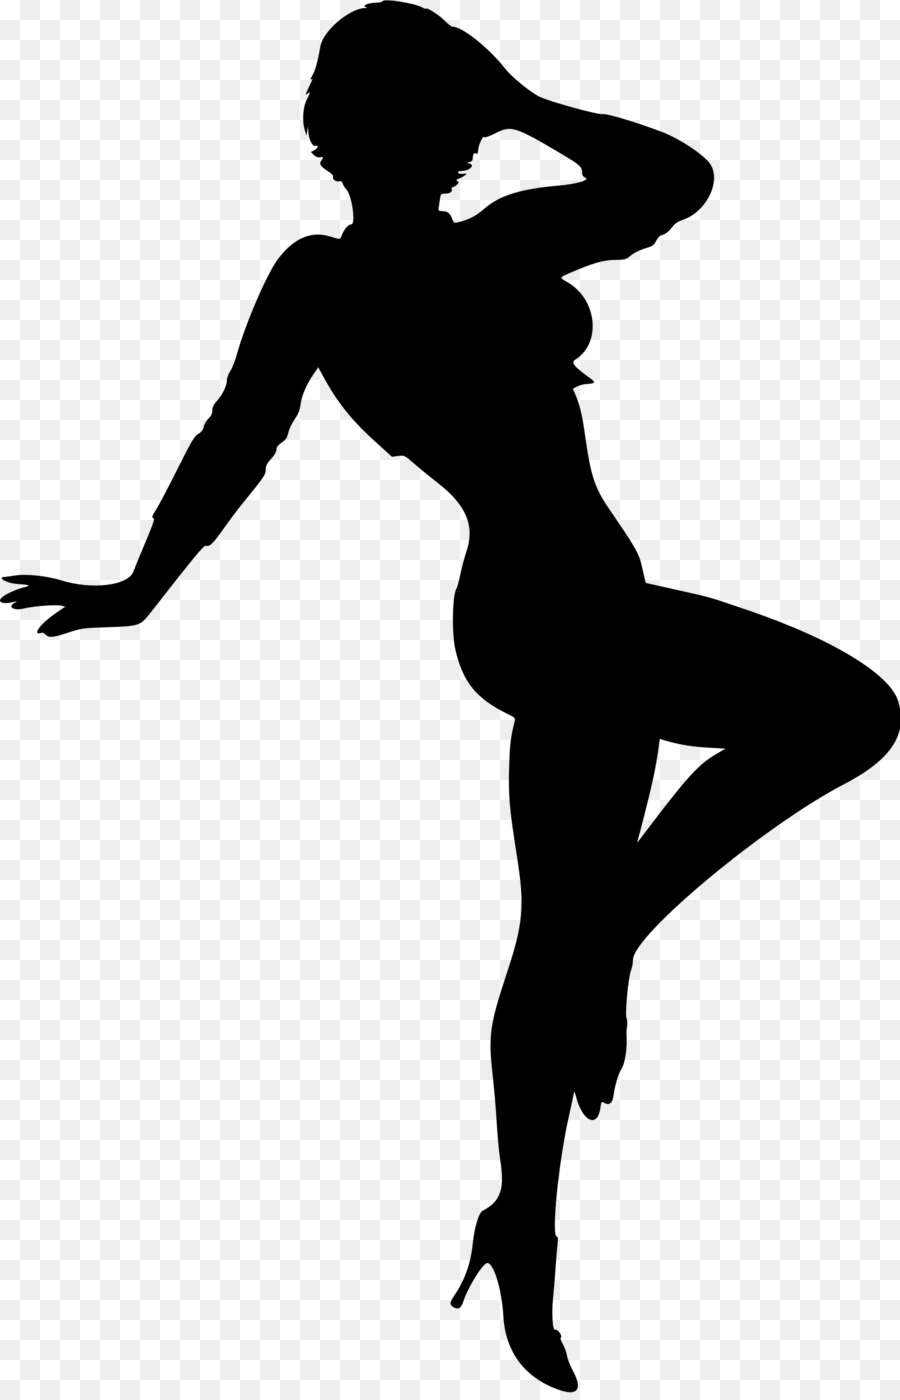 Woman athletic posing silhouette clipart jpg black and white library Woman Cartoon clipart - Woman, Silhouette, Black ... jpg black and white library